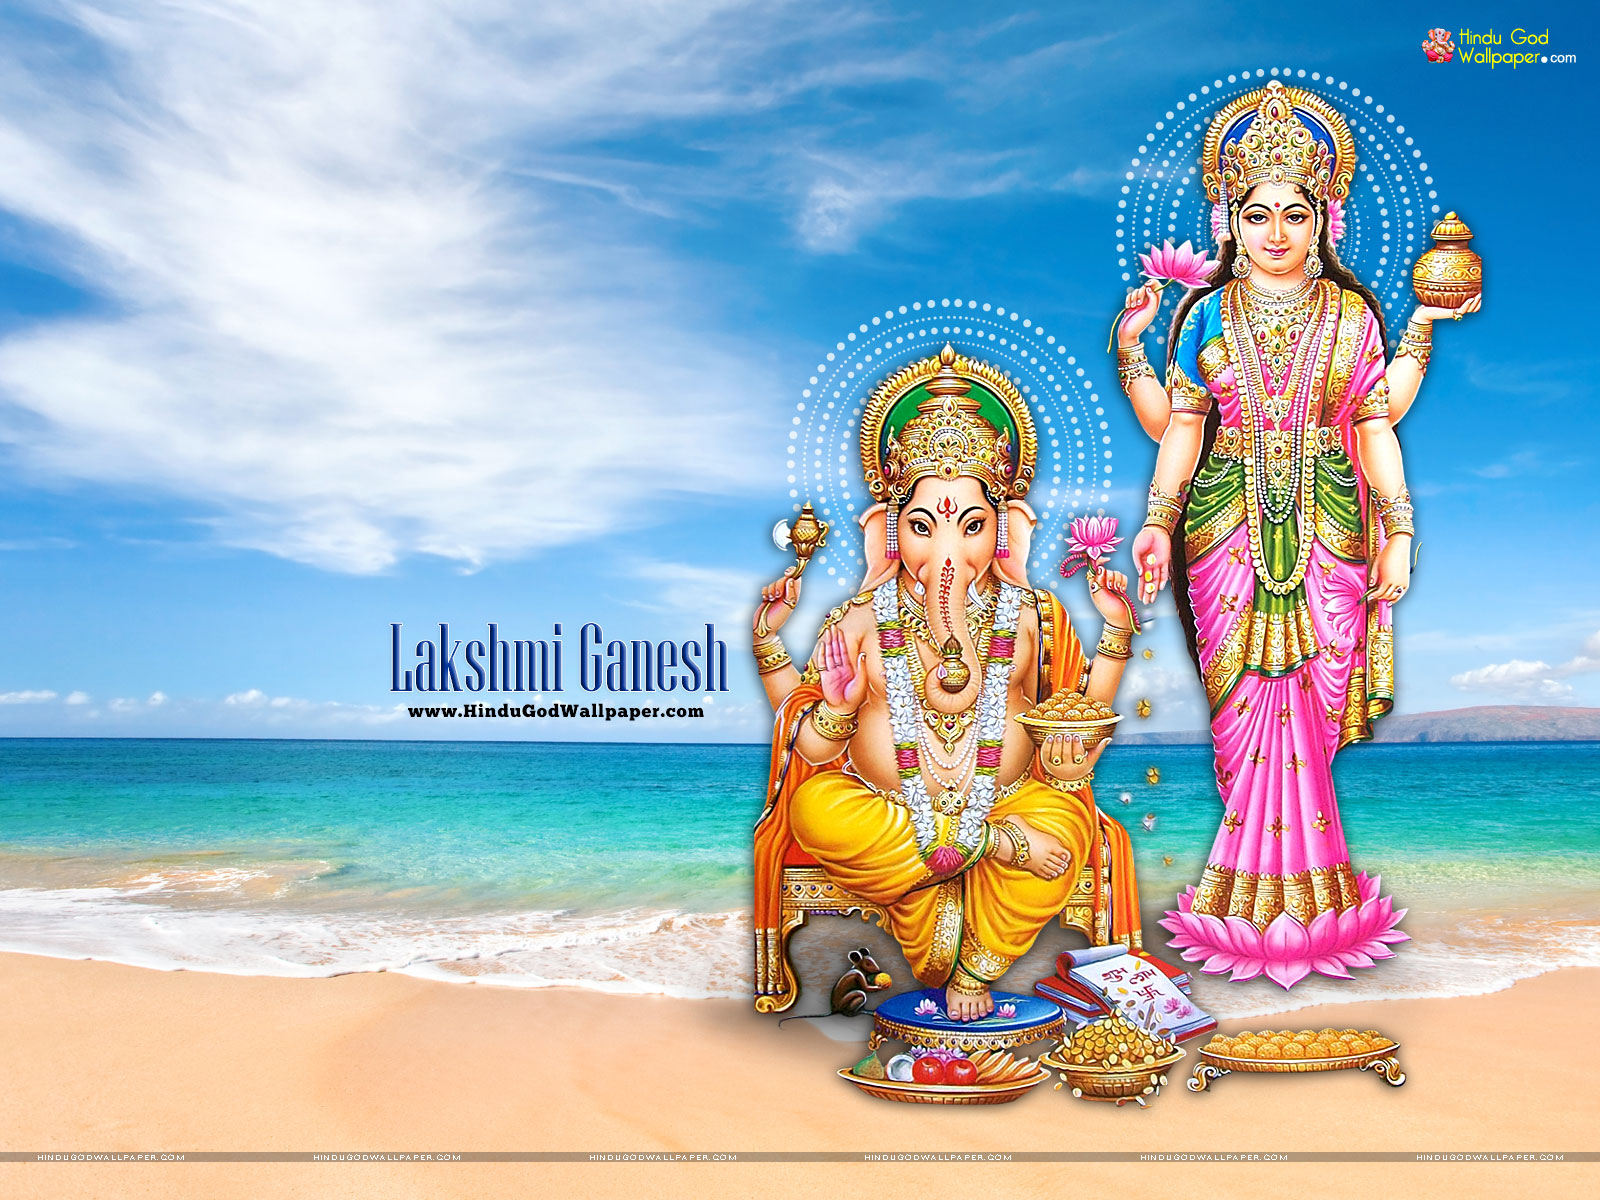 Lord Ganesha Wallpapers, Pictures & Images Free Download